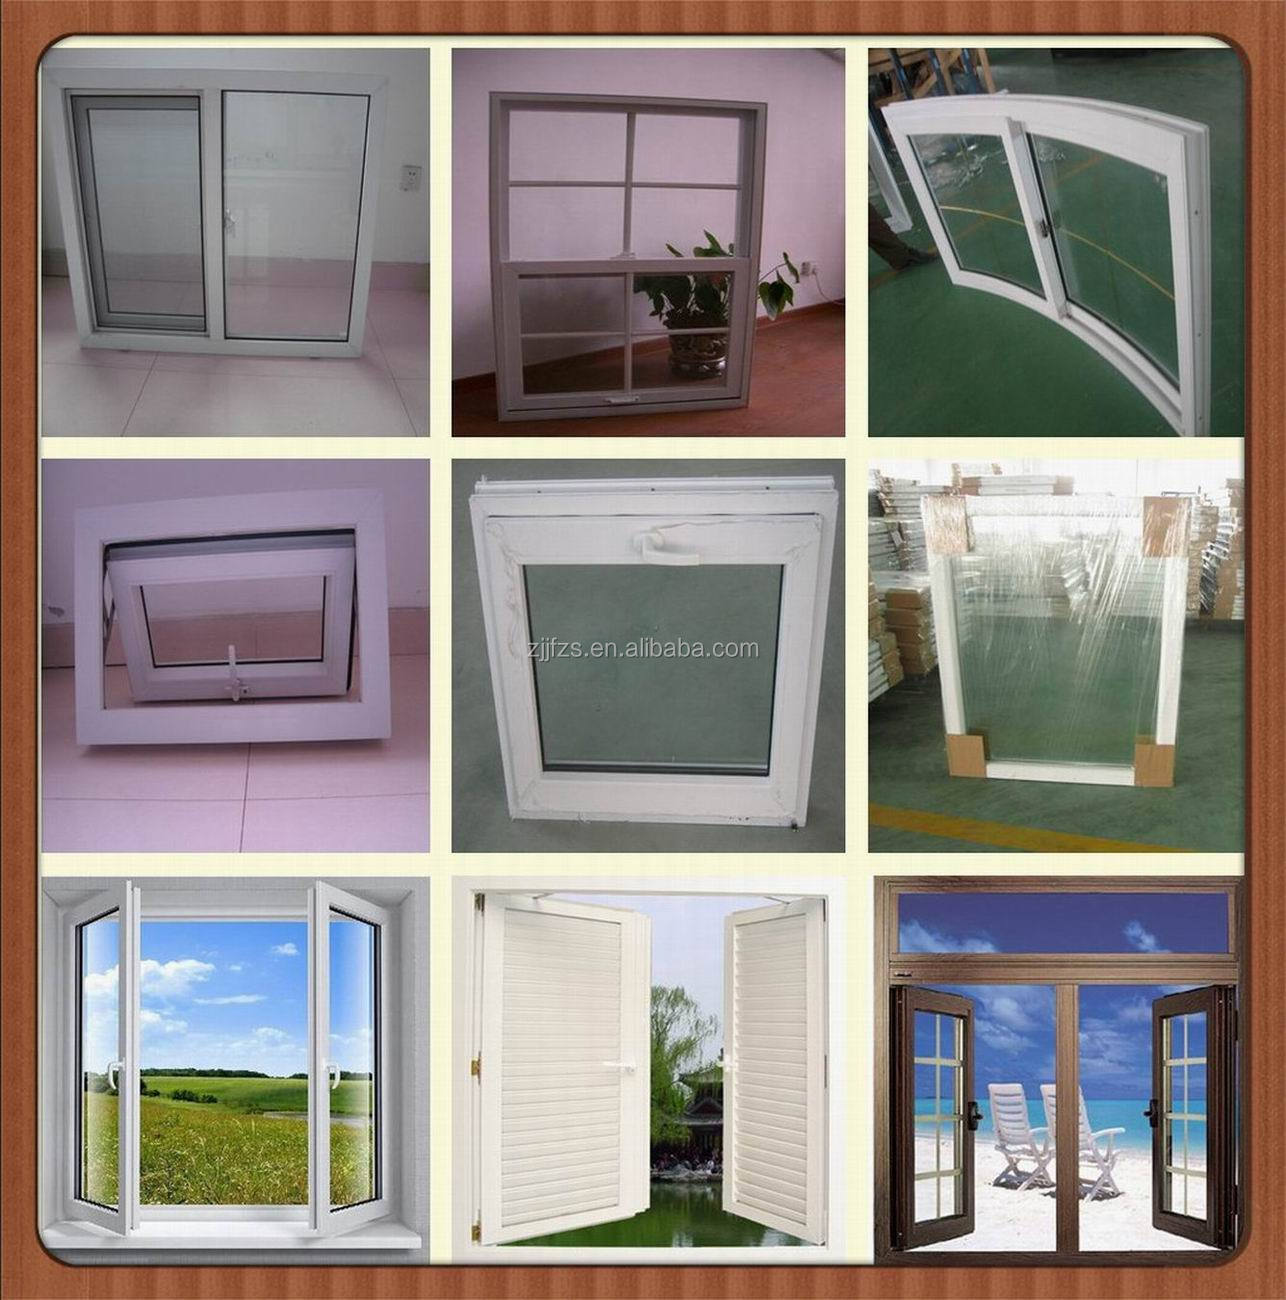 China pvc windows grilles house designs windows designs of for Window models for house photos